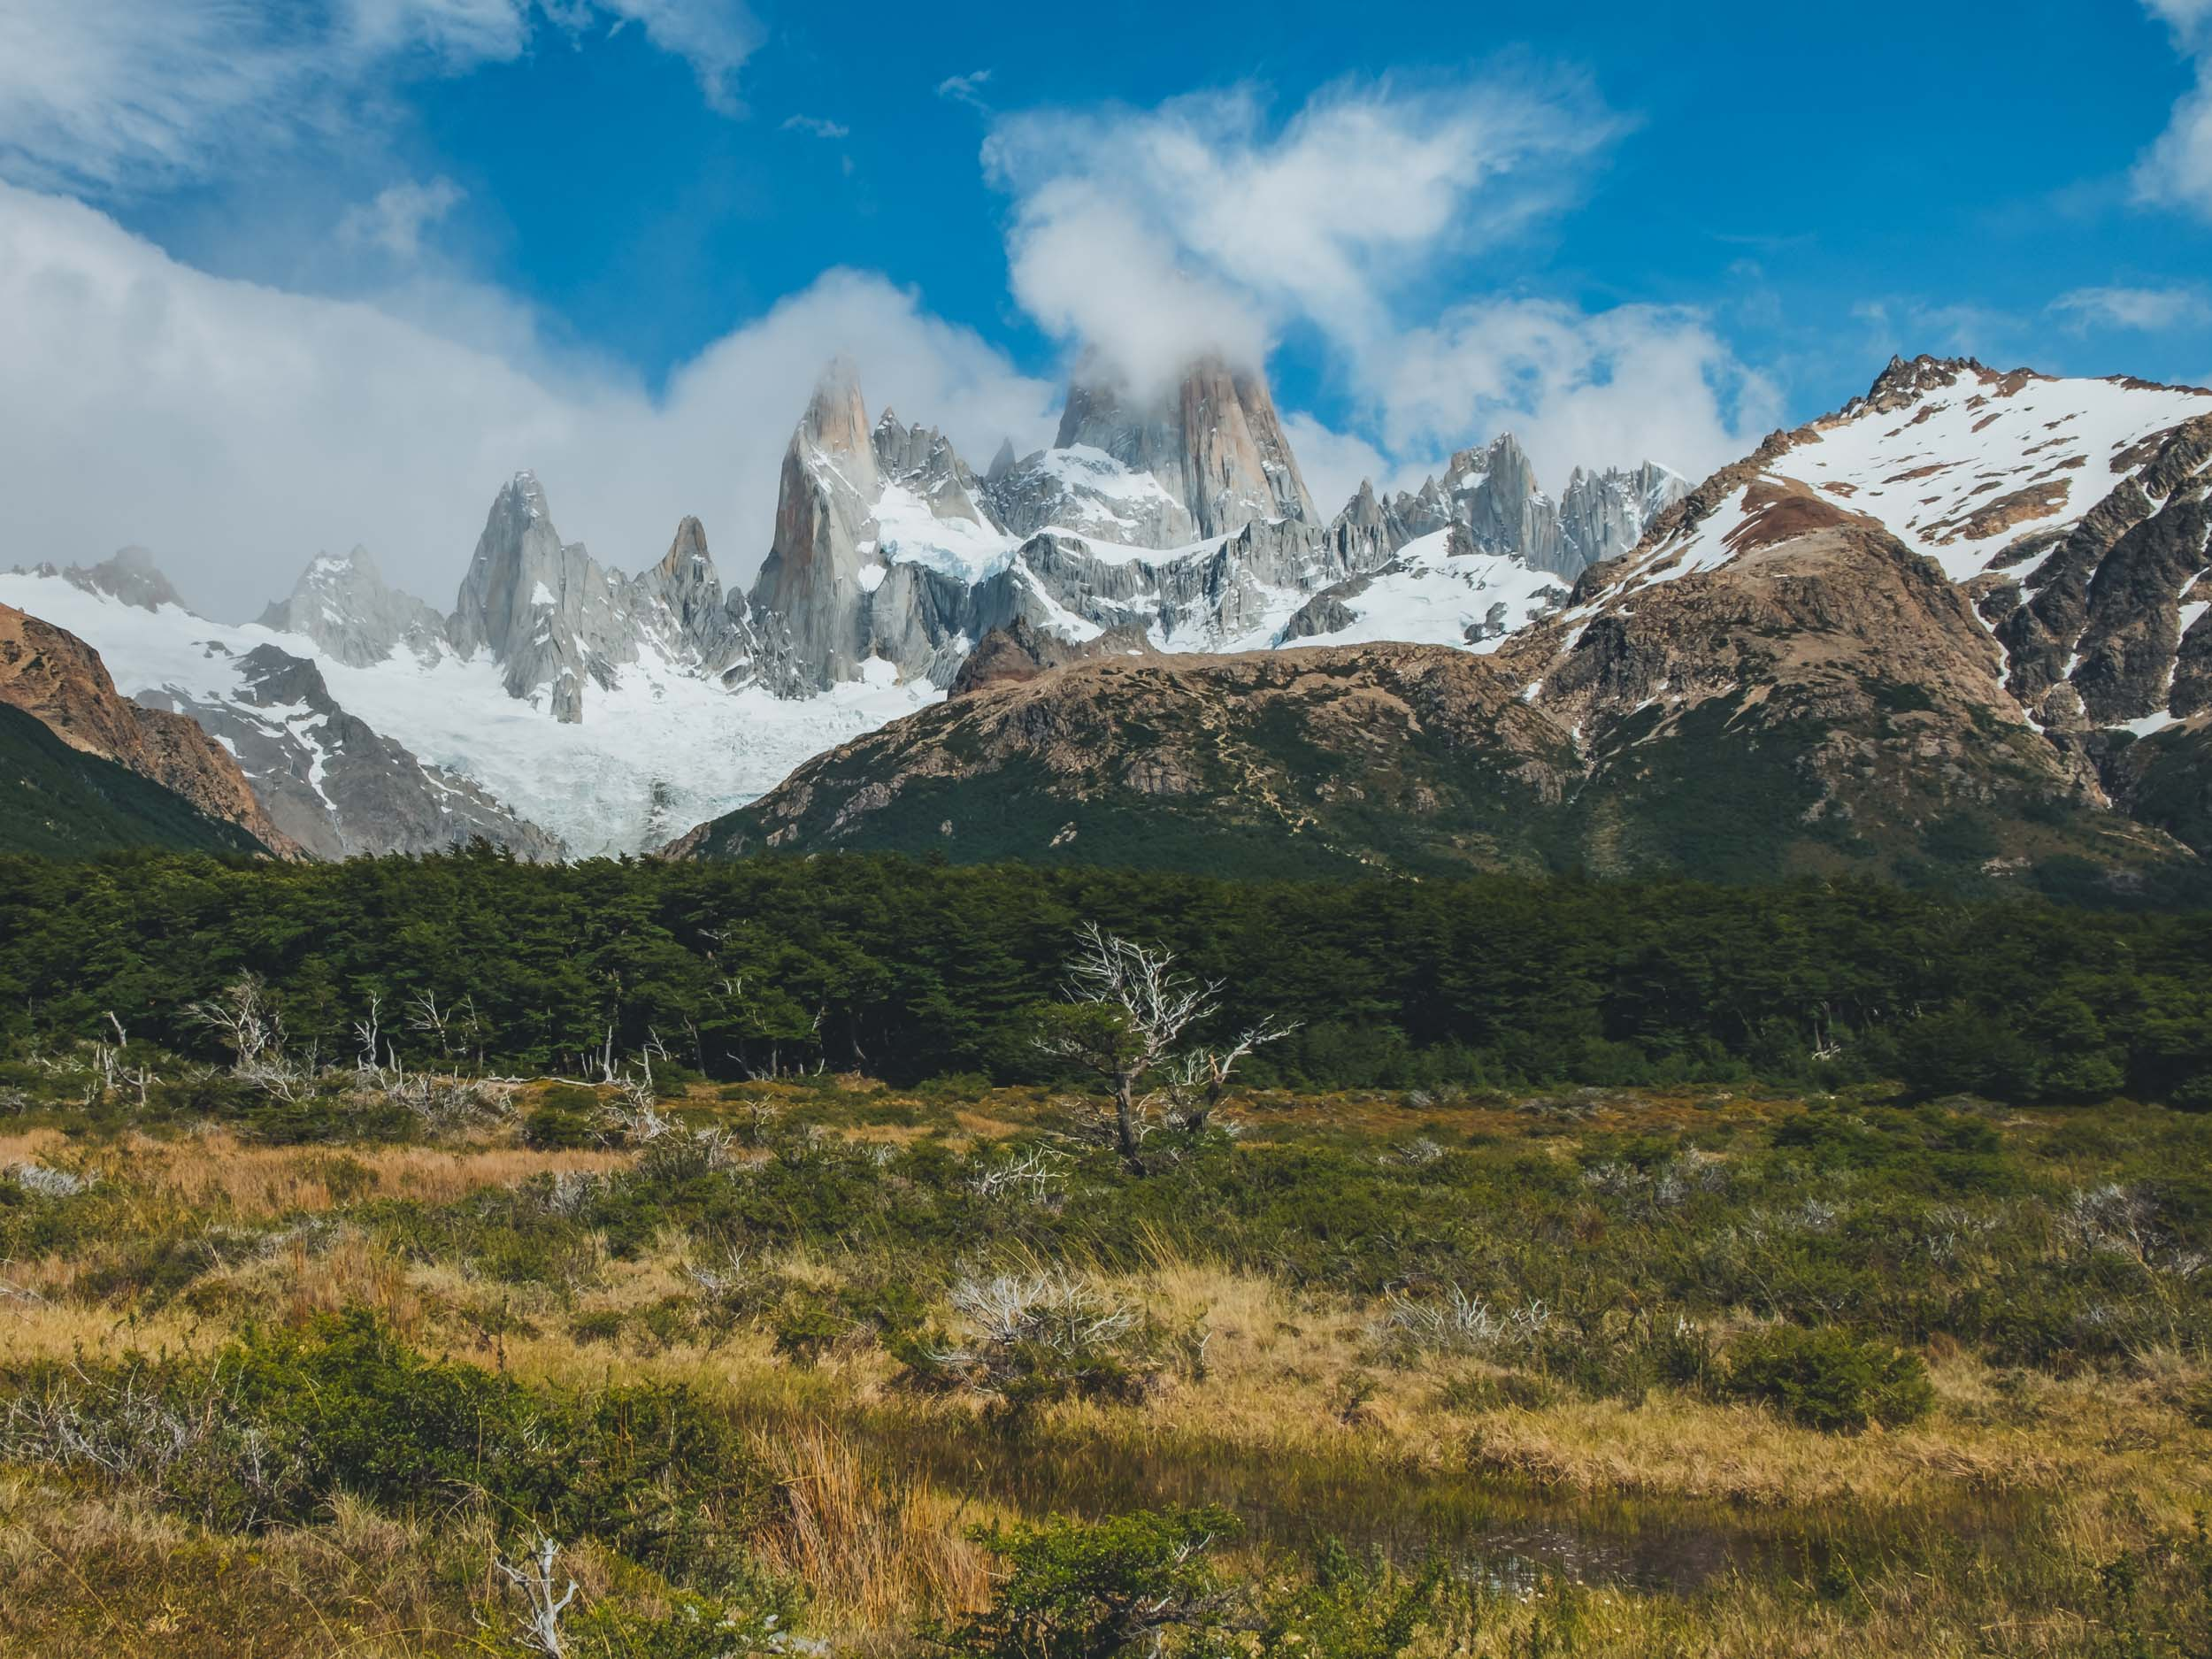 A month in Chile during December 2017, visiting places such us Valparaiso, Santiago, Atacama, Carretera Austral and Patagonia.